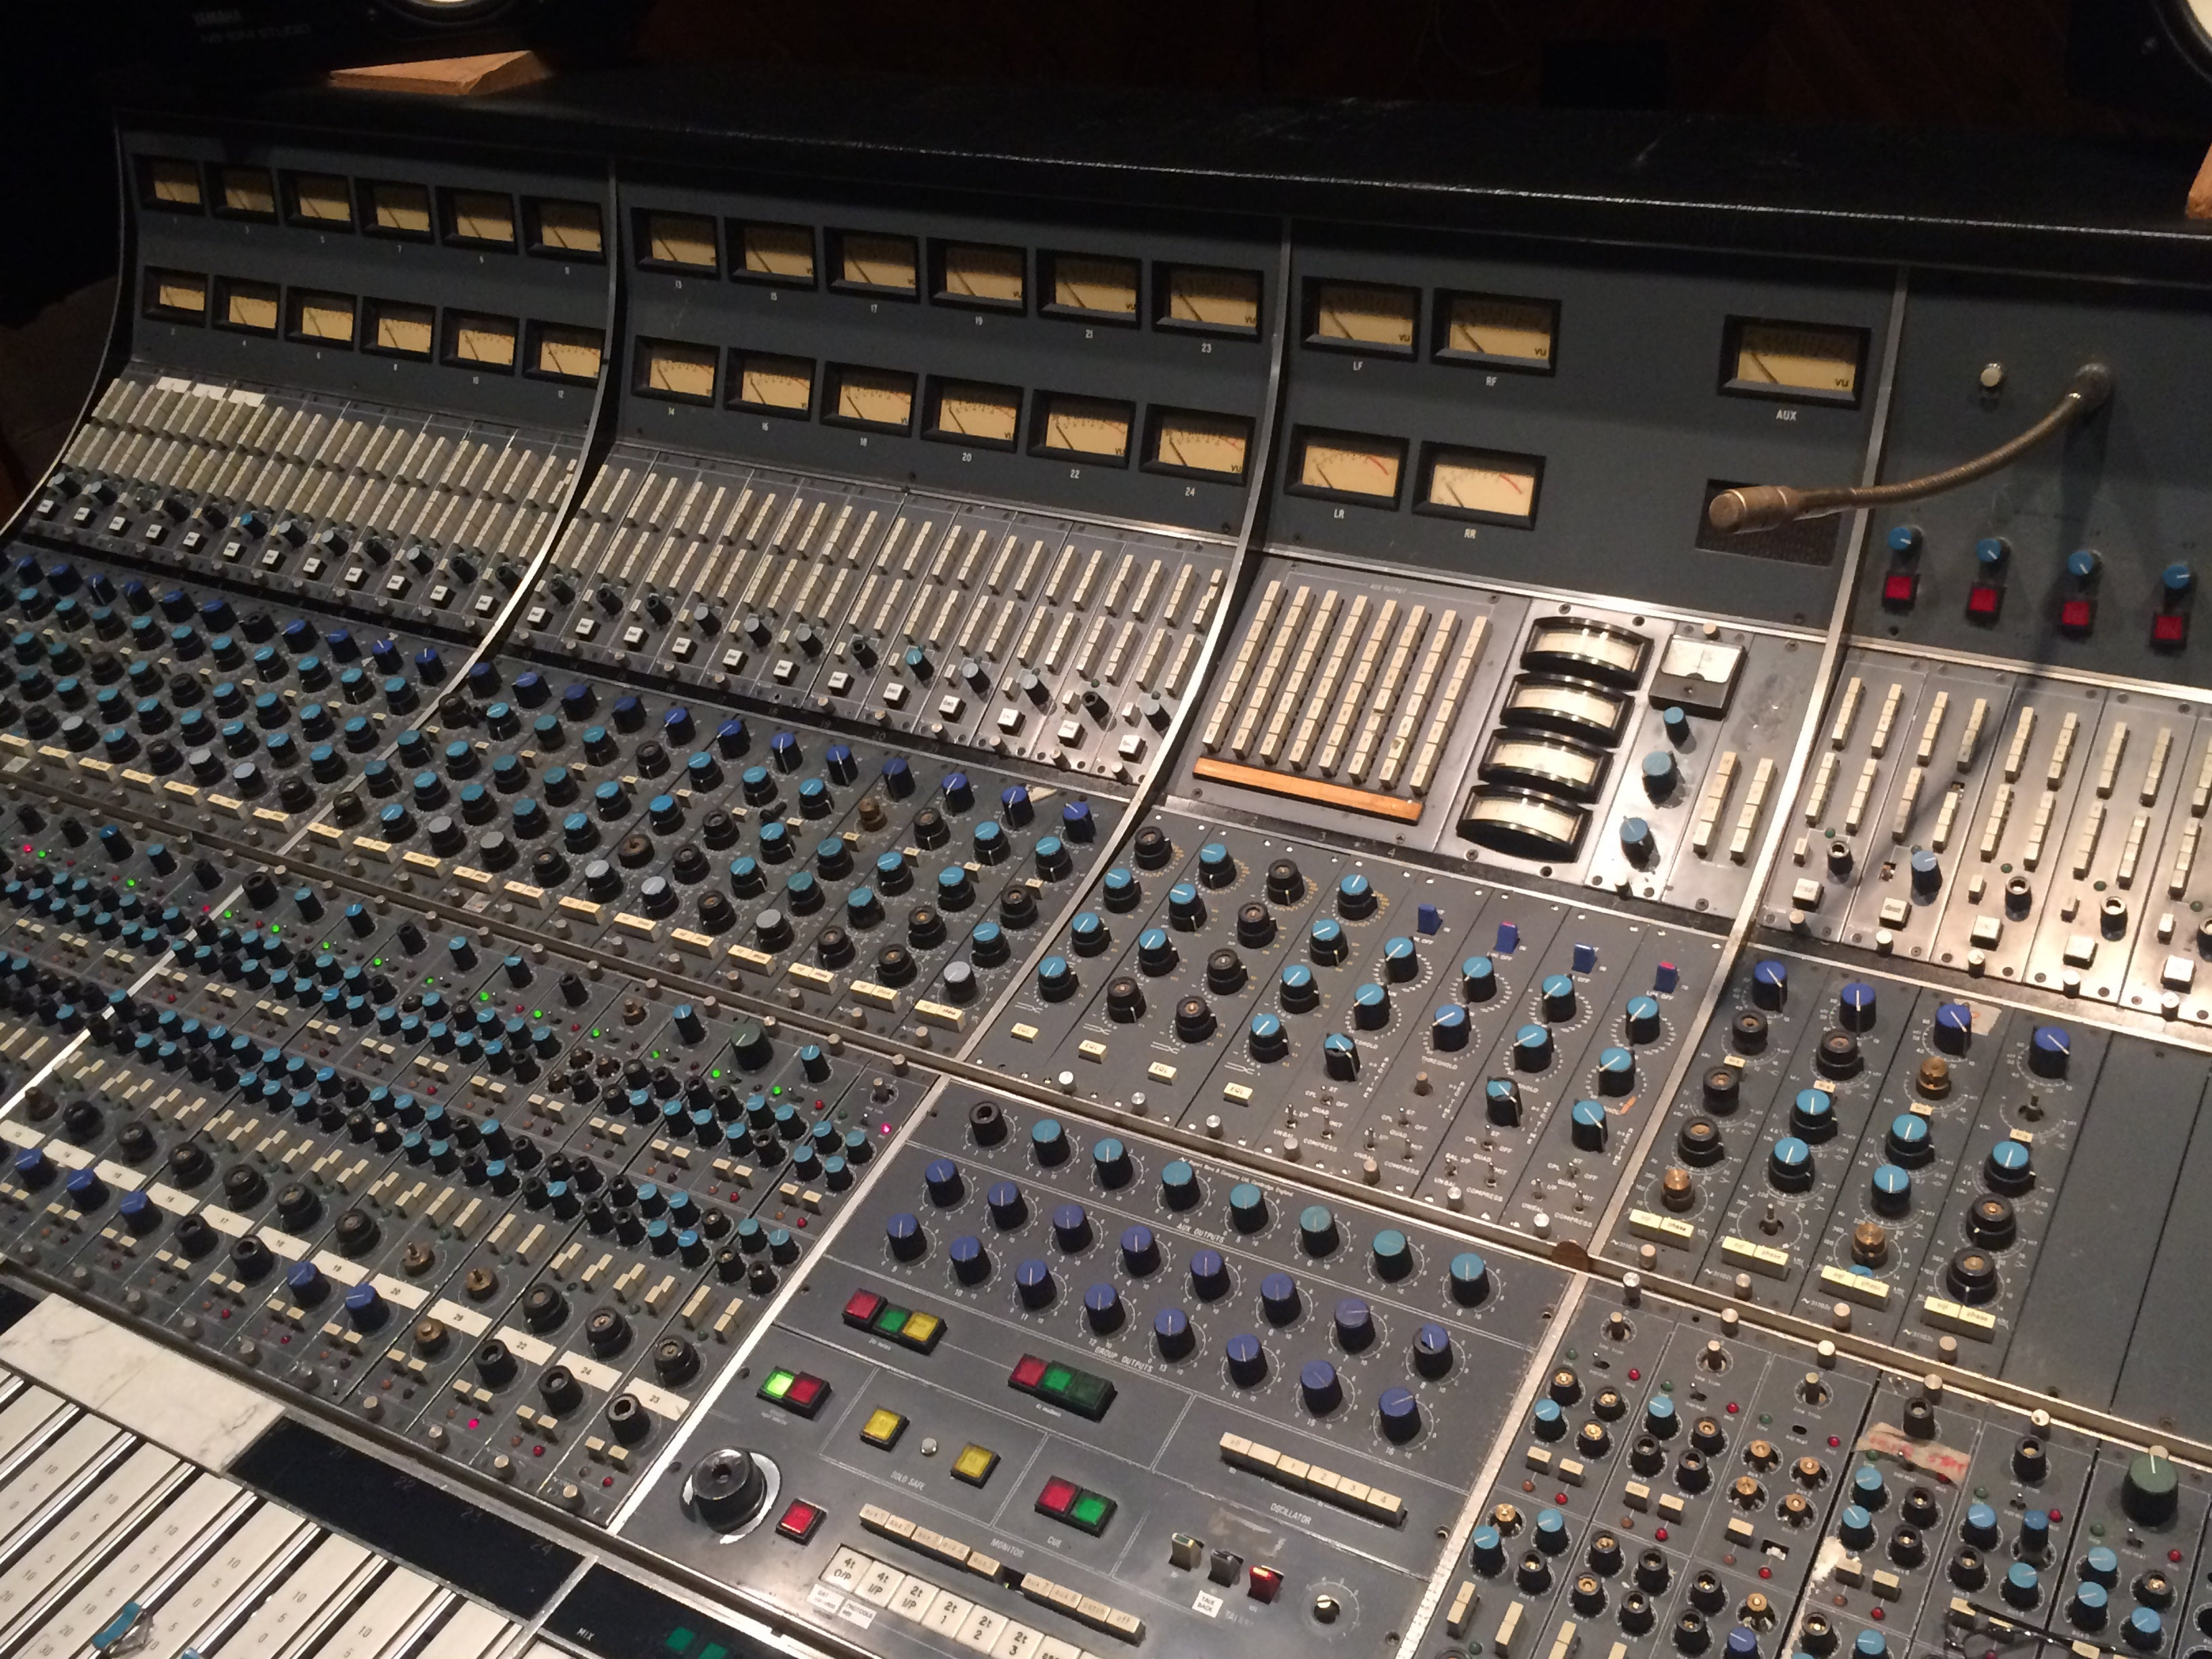 Pleasing Vintage Neve 8068 Recording Mixing Console Professional Download Free Architecture Designs Scobabritishbridgeorg